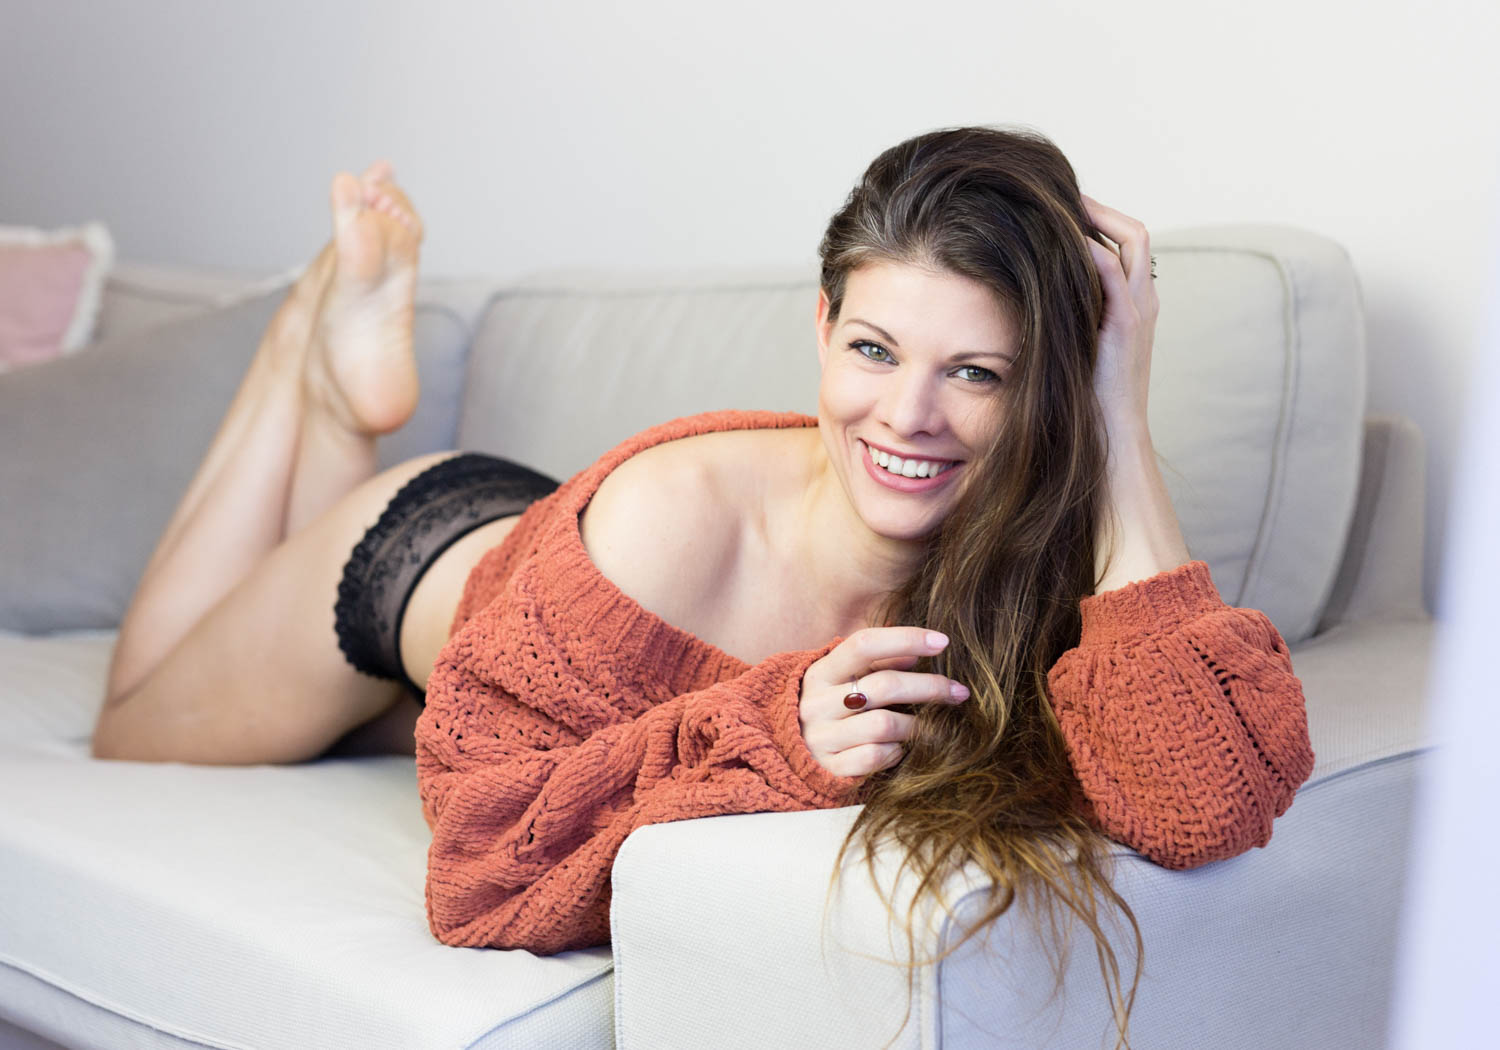 SWEATERS - Very cozy and natural outfit to start the photoshoot and make you feel at ease. Everyone has a sweater in their closet. Otherwise you can use our comfy blanket. Pick this outfit to capture some lifestyle sexy images.